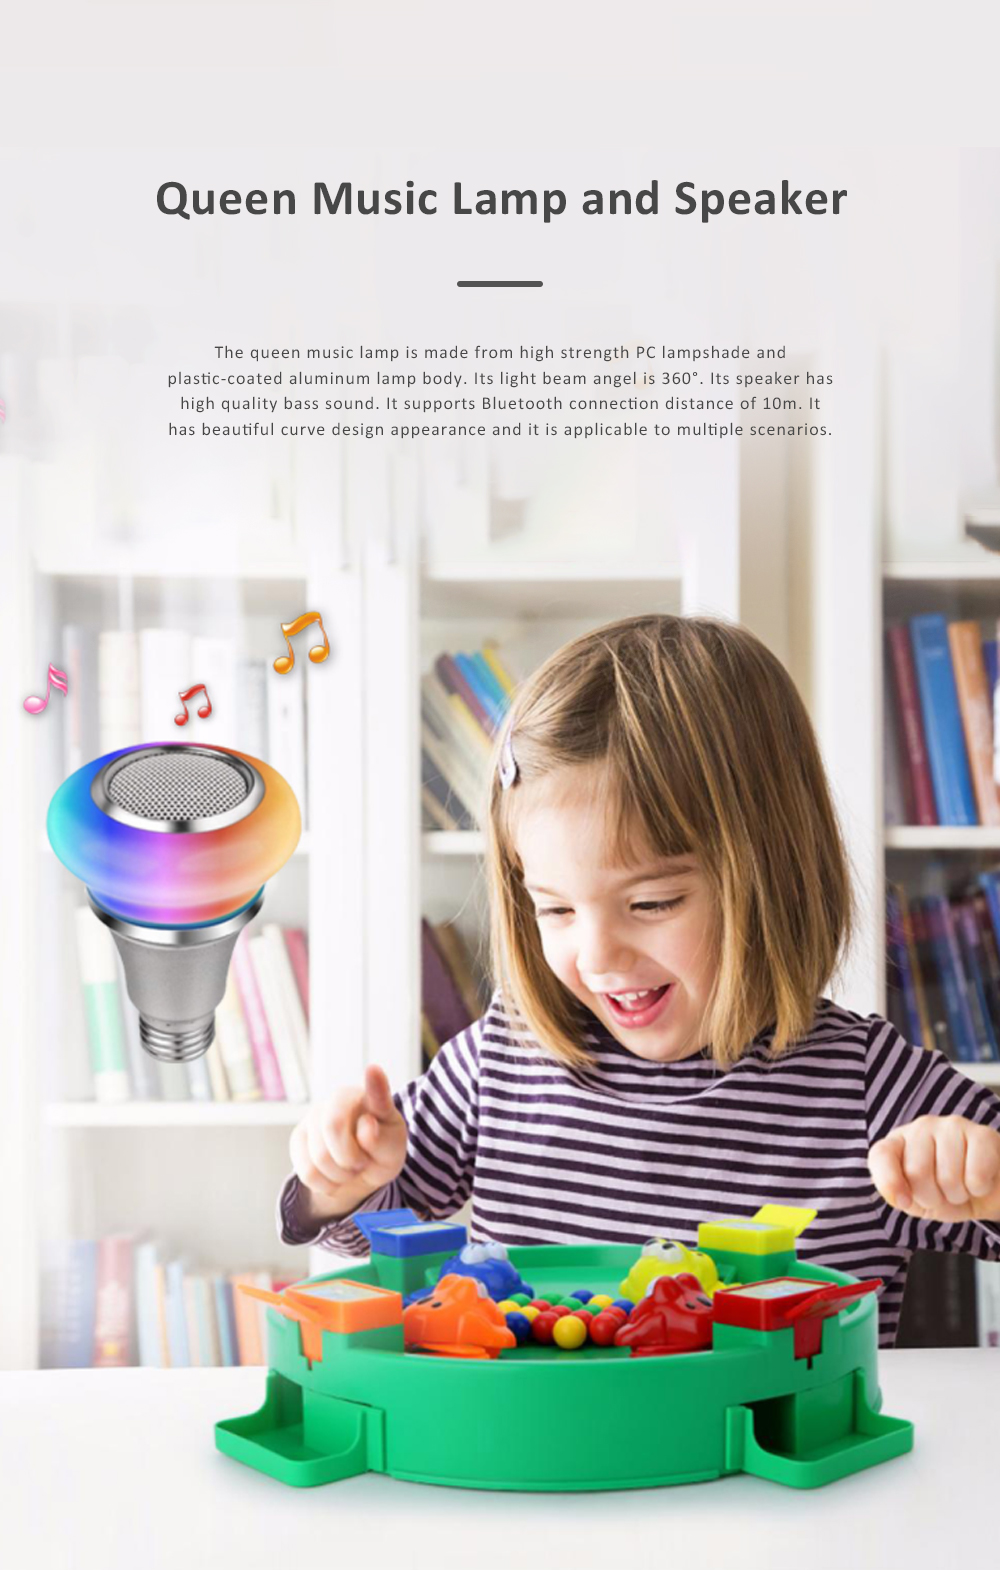 Waterproof Colorful Lighting Toy for Children's Gift Choice High Strength PC Cartoon Smart Bulb and Speaker Bluetooth Music Bulb Light 0